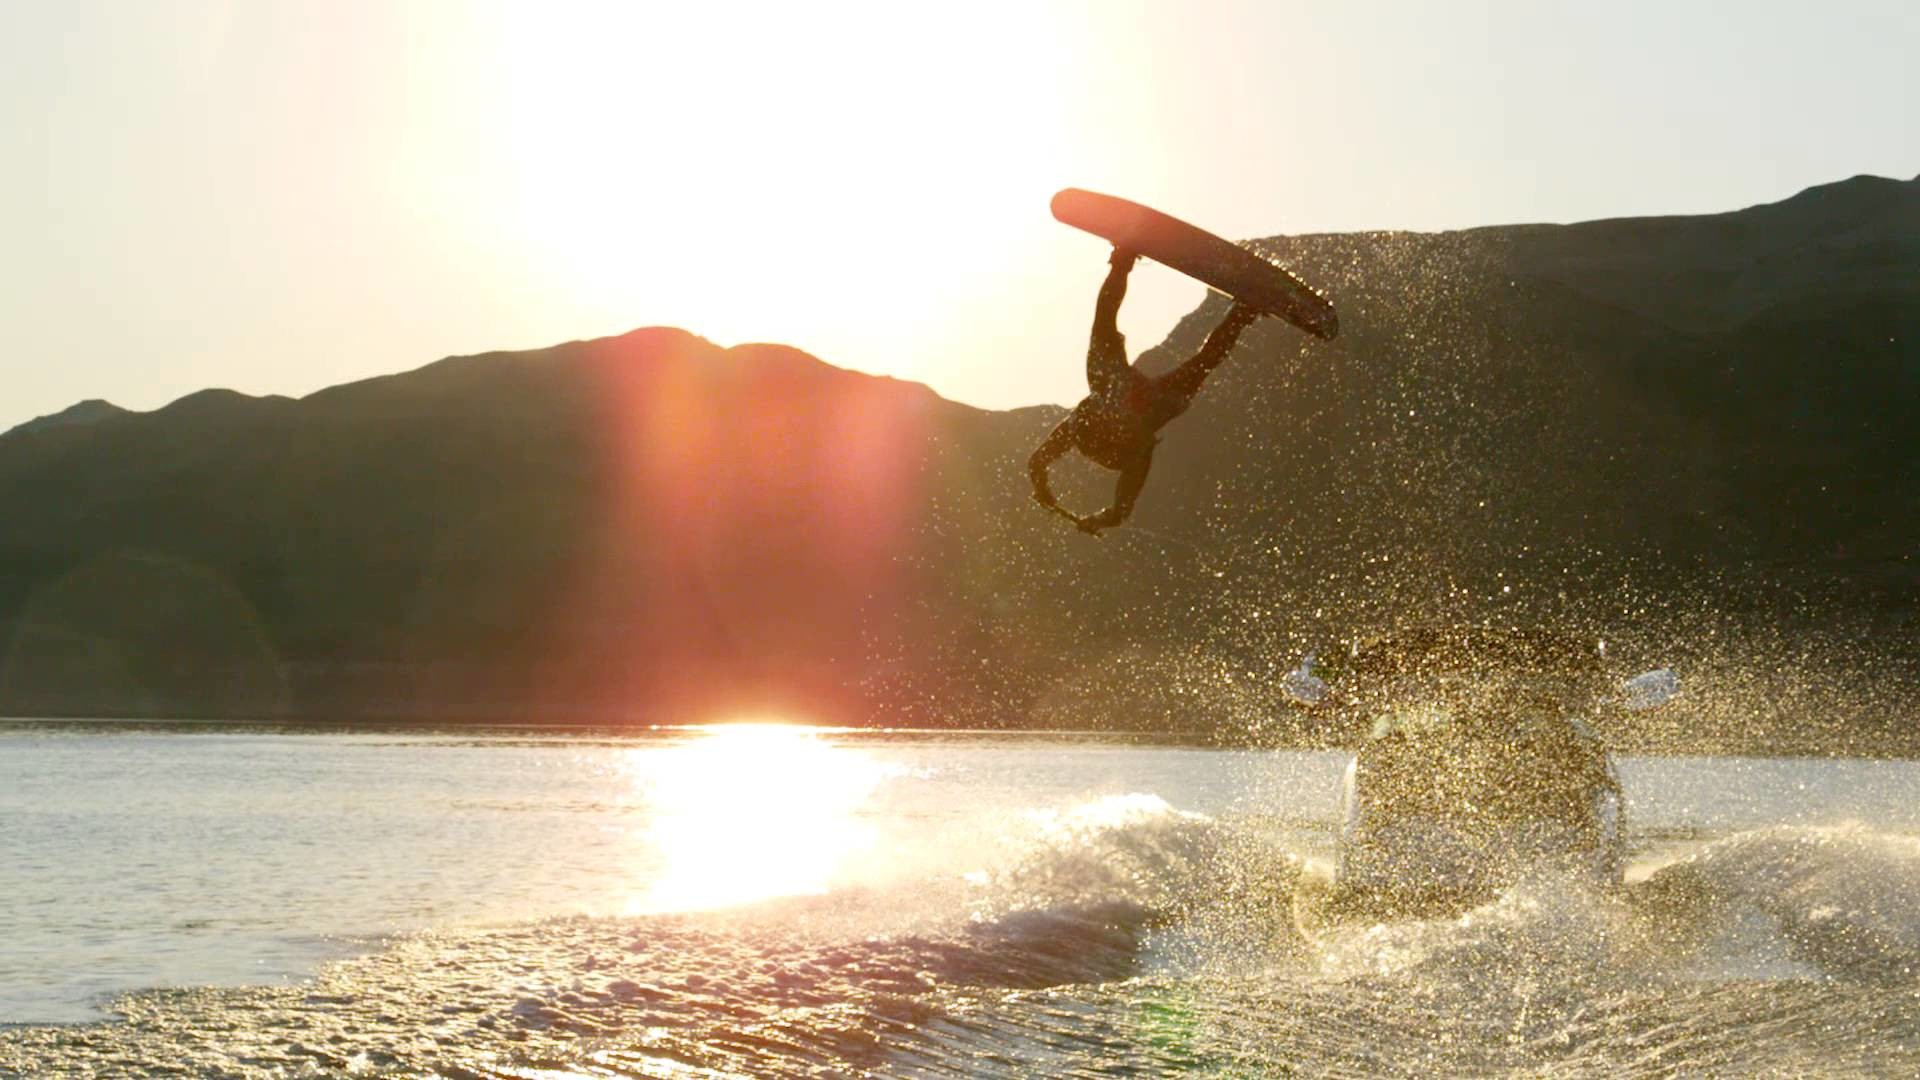 Wakeboard Superman in Super Slow Motion!